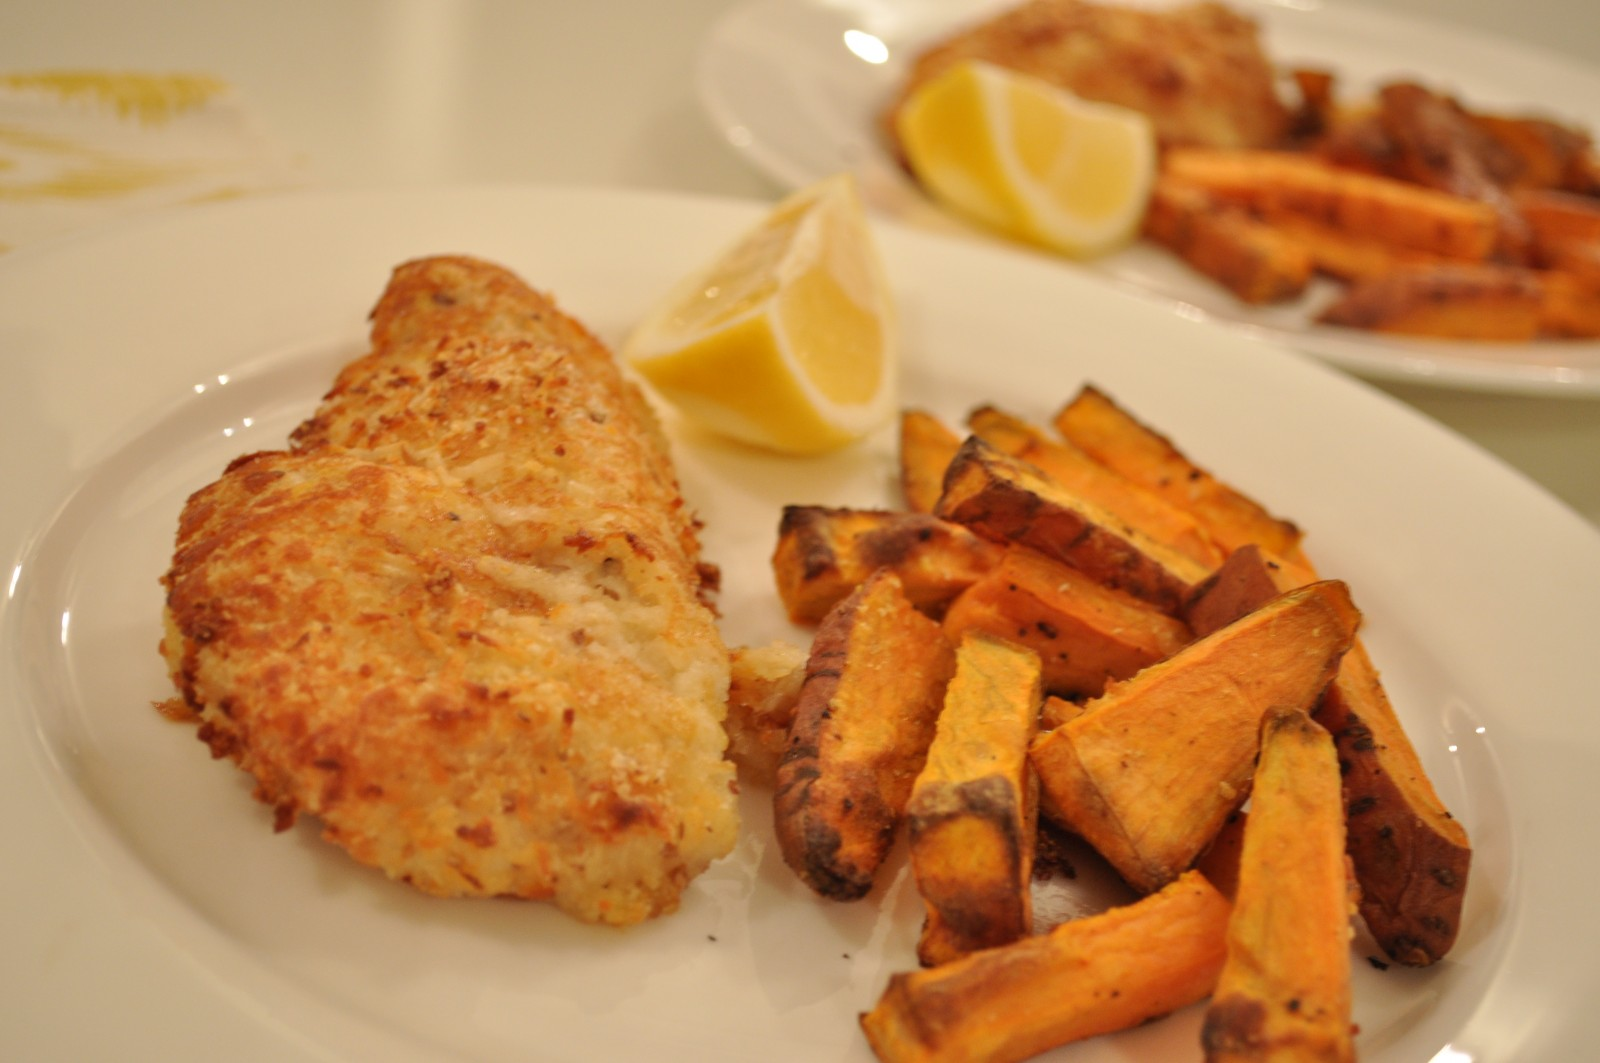 Halloumi-crumbed chicken breast